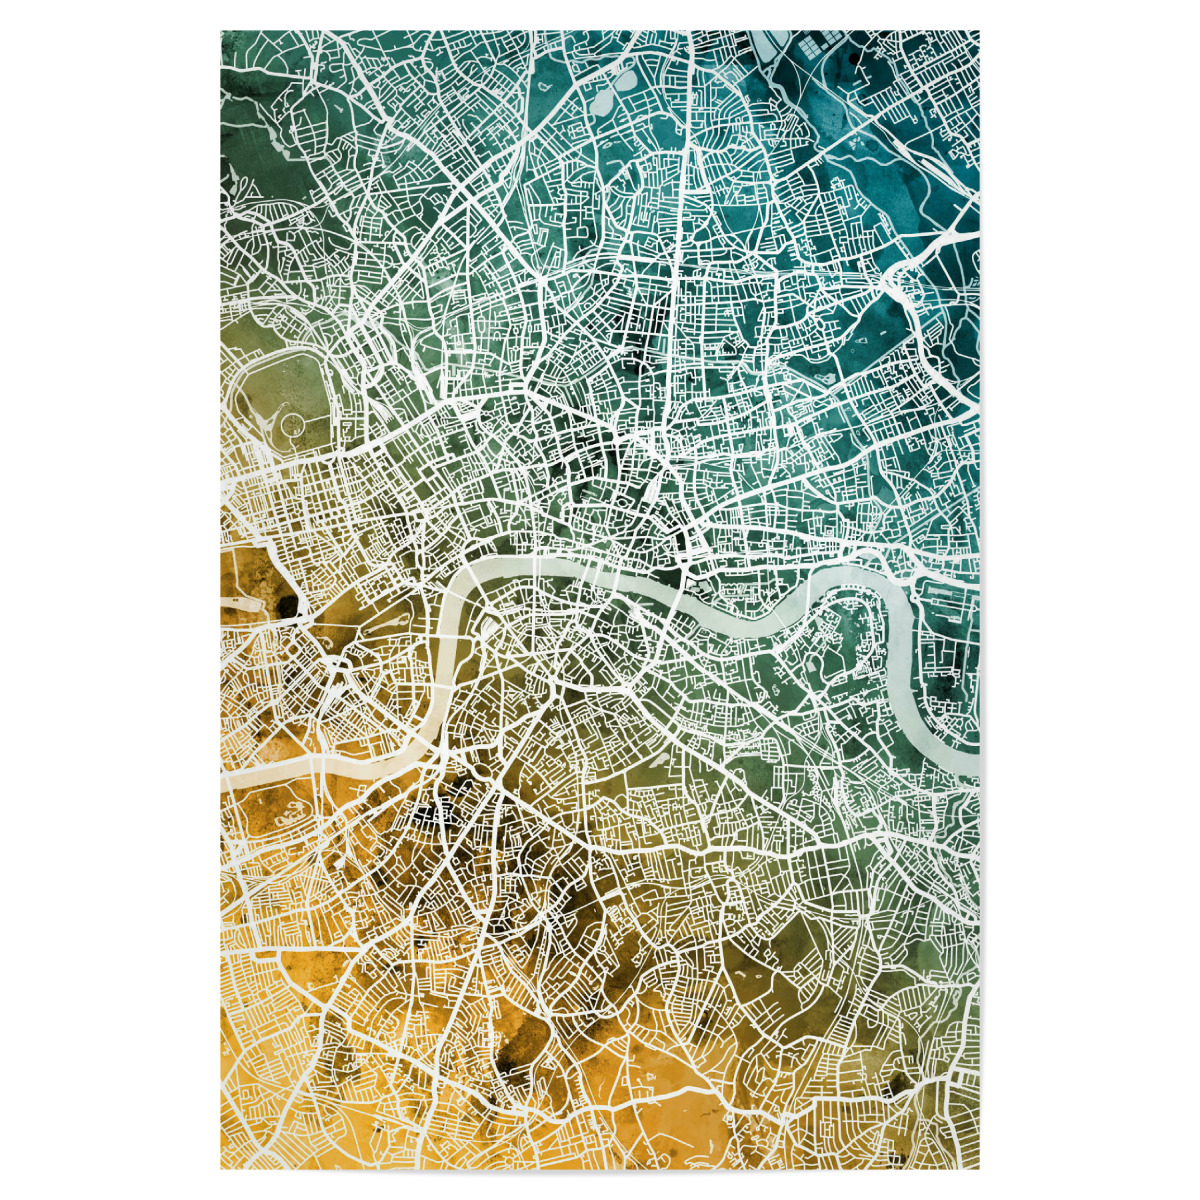 Map Of England Poster.Purchase The London England Street Map As A Poster At Artboxone